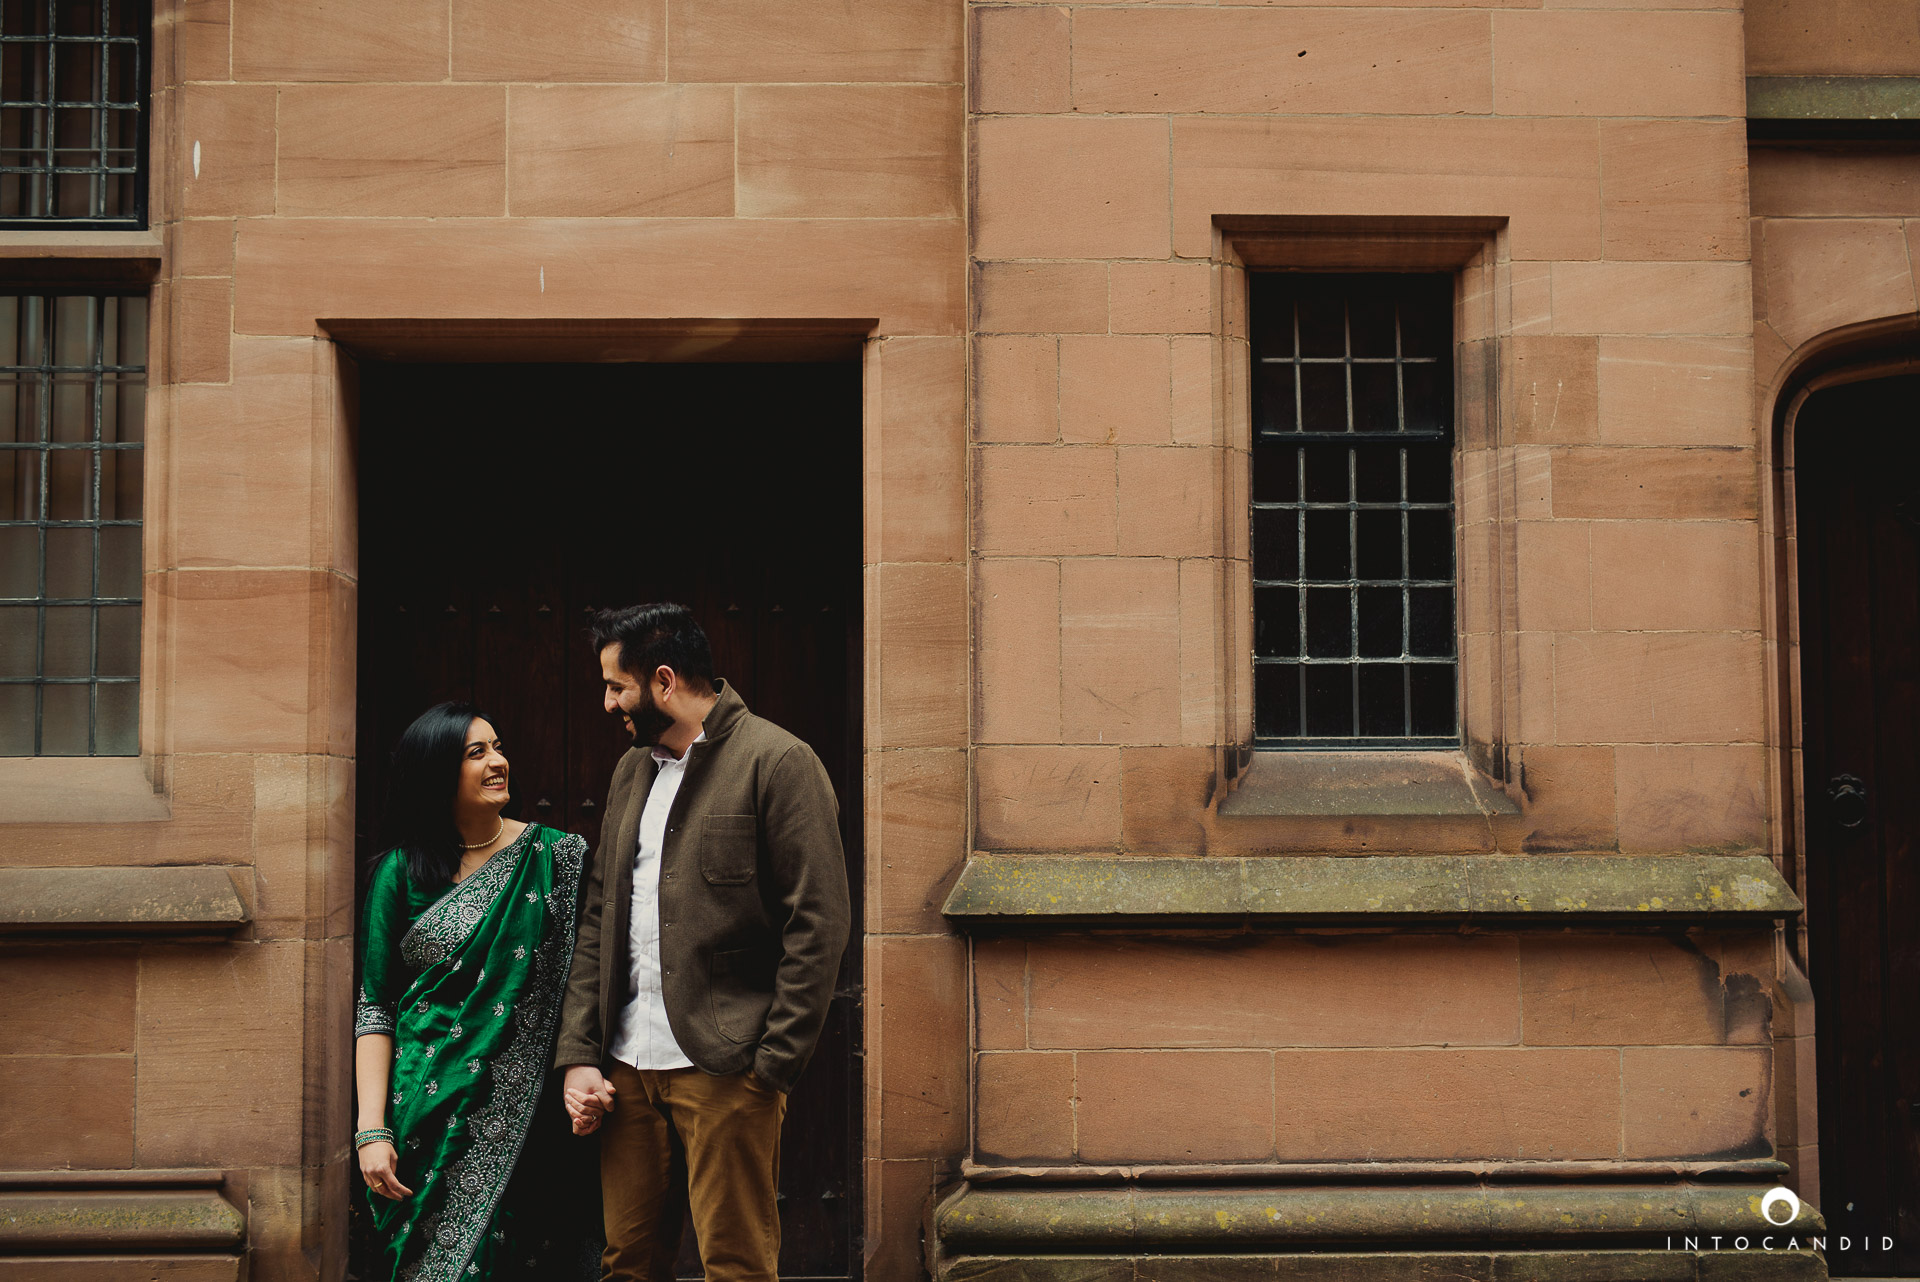 London_prewedding_Photographer_Intocandid_Photography_Ketan & Manasvi_01.JPG